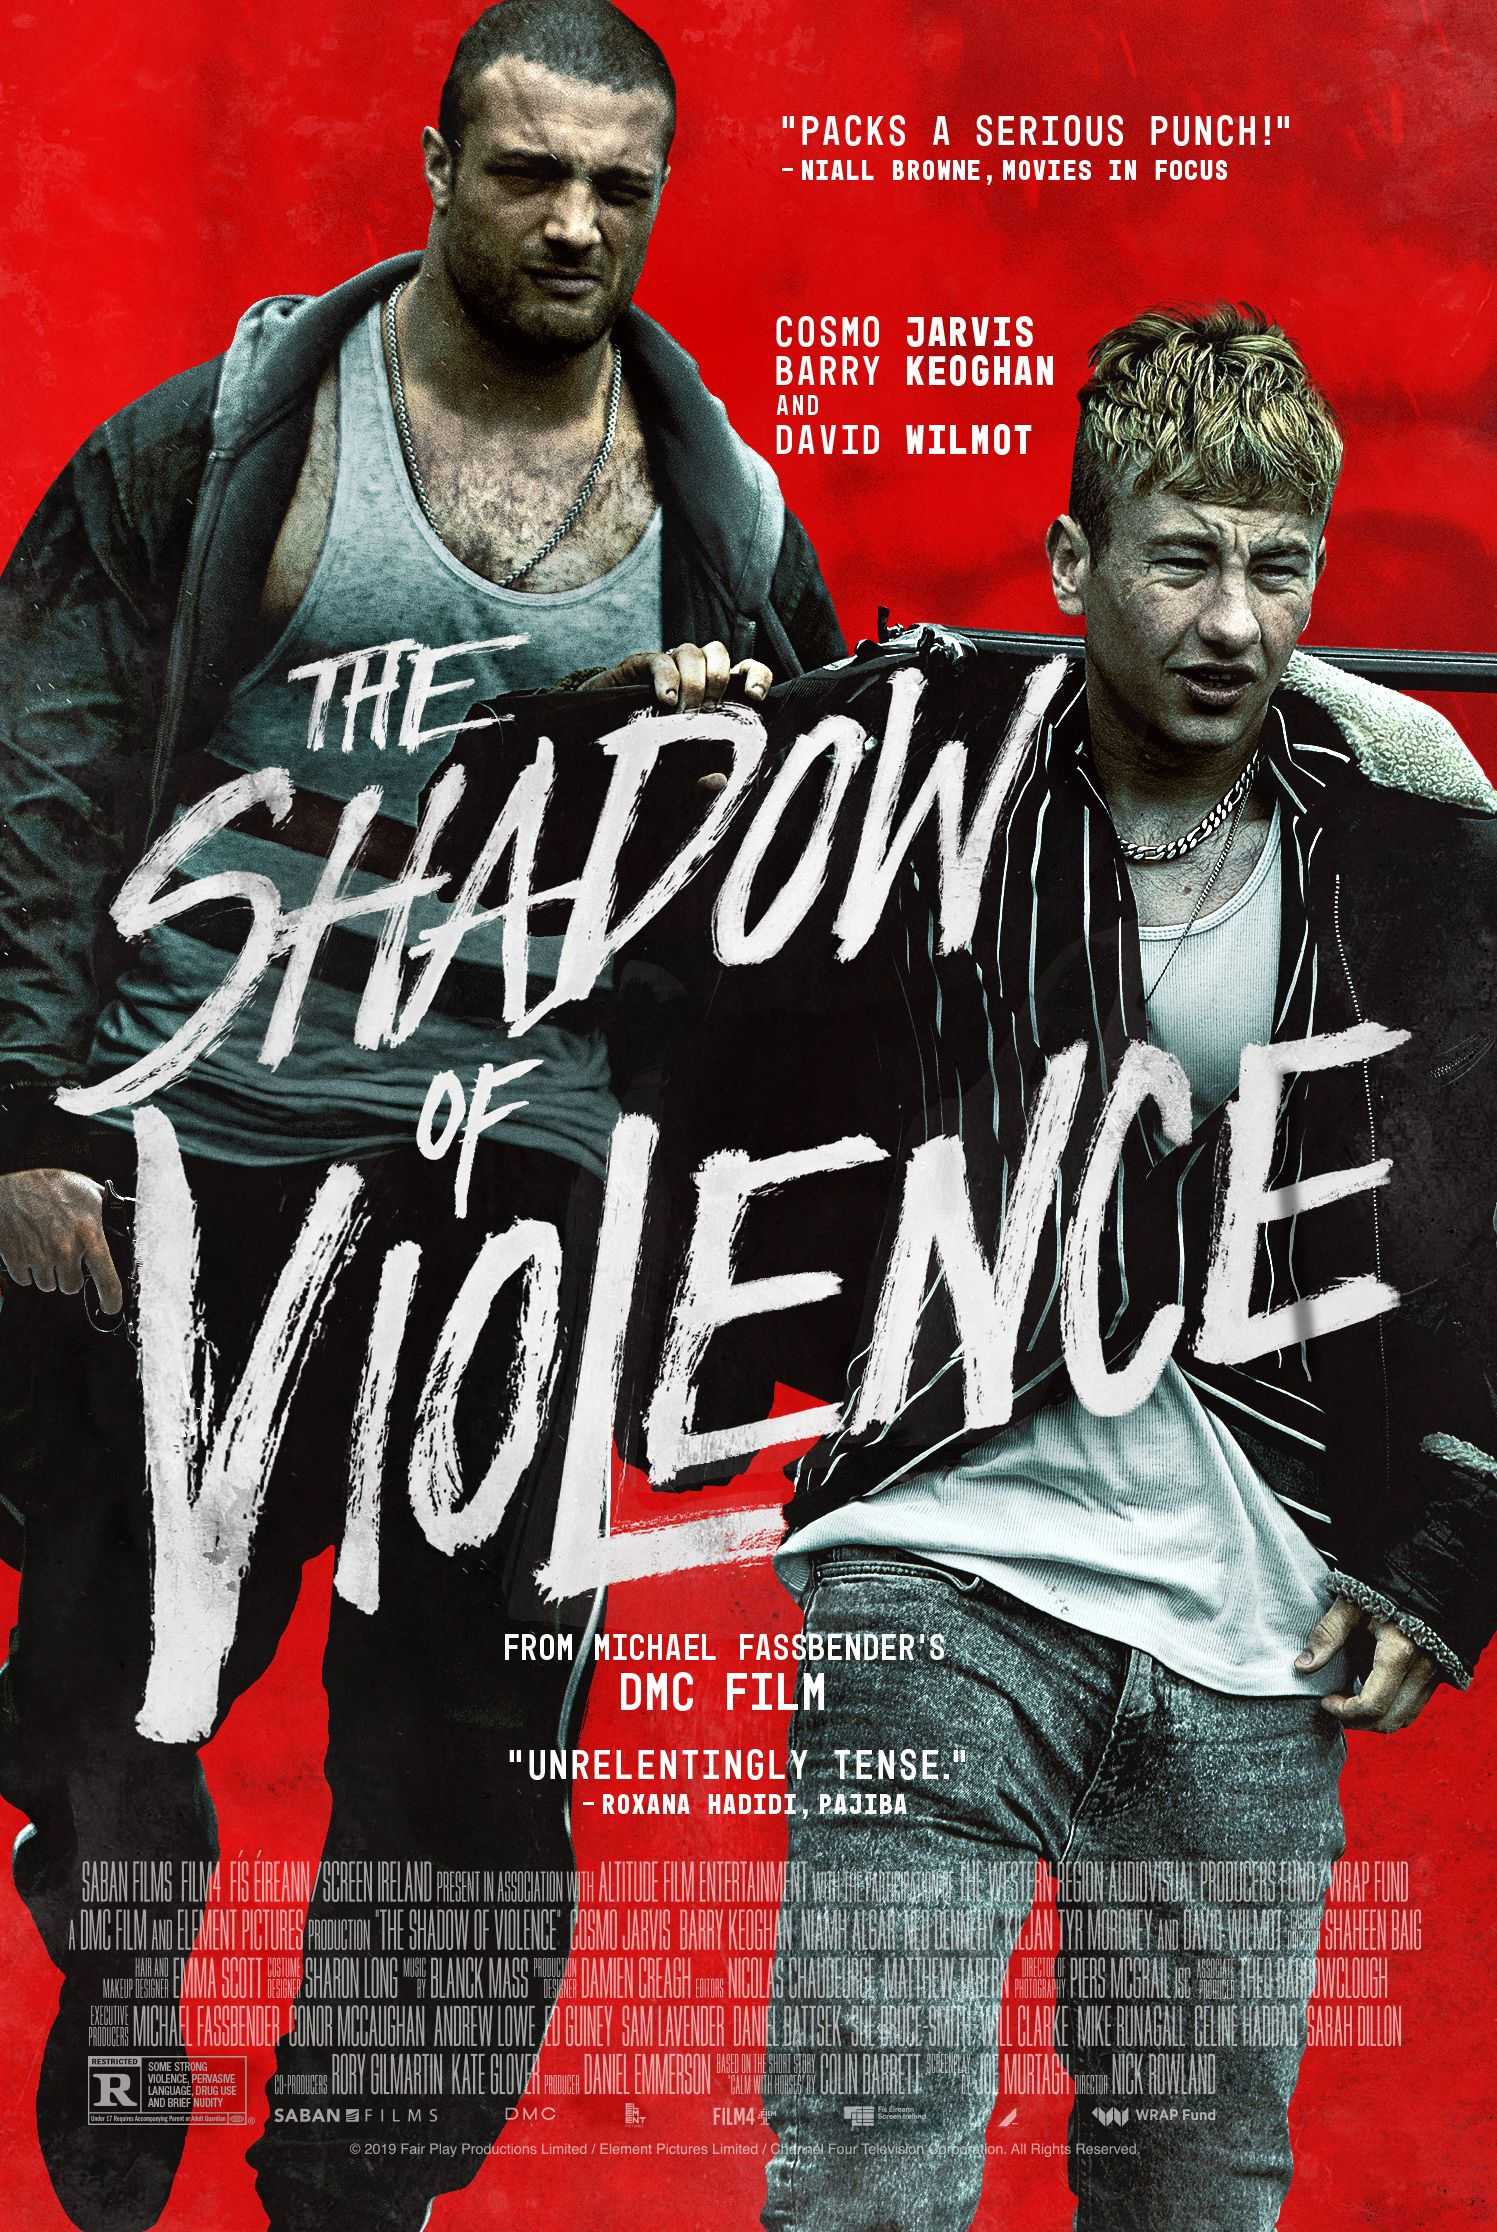 'The Shadow of Violence' Official Trailer